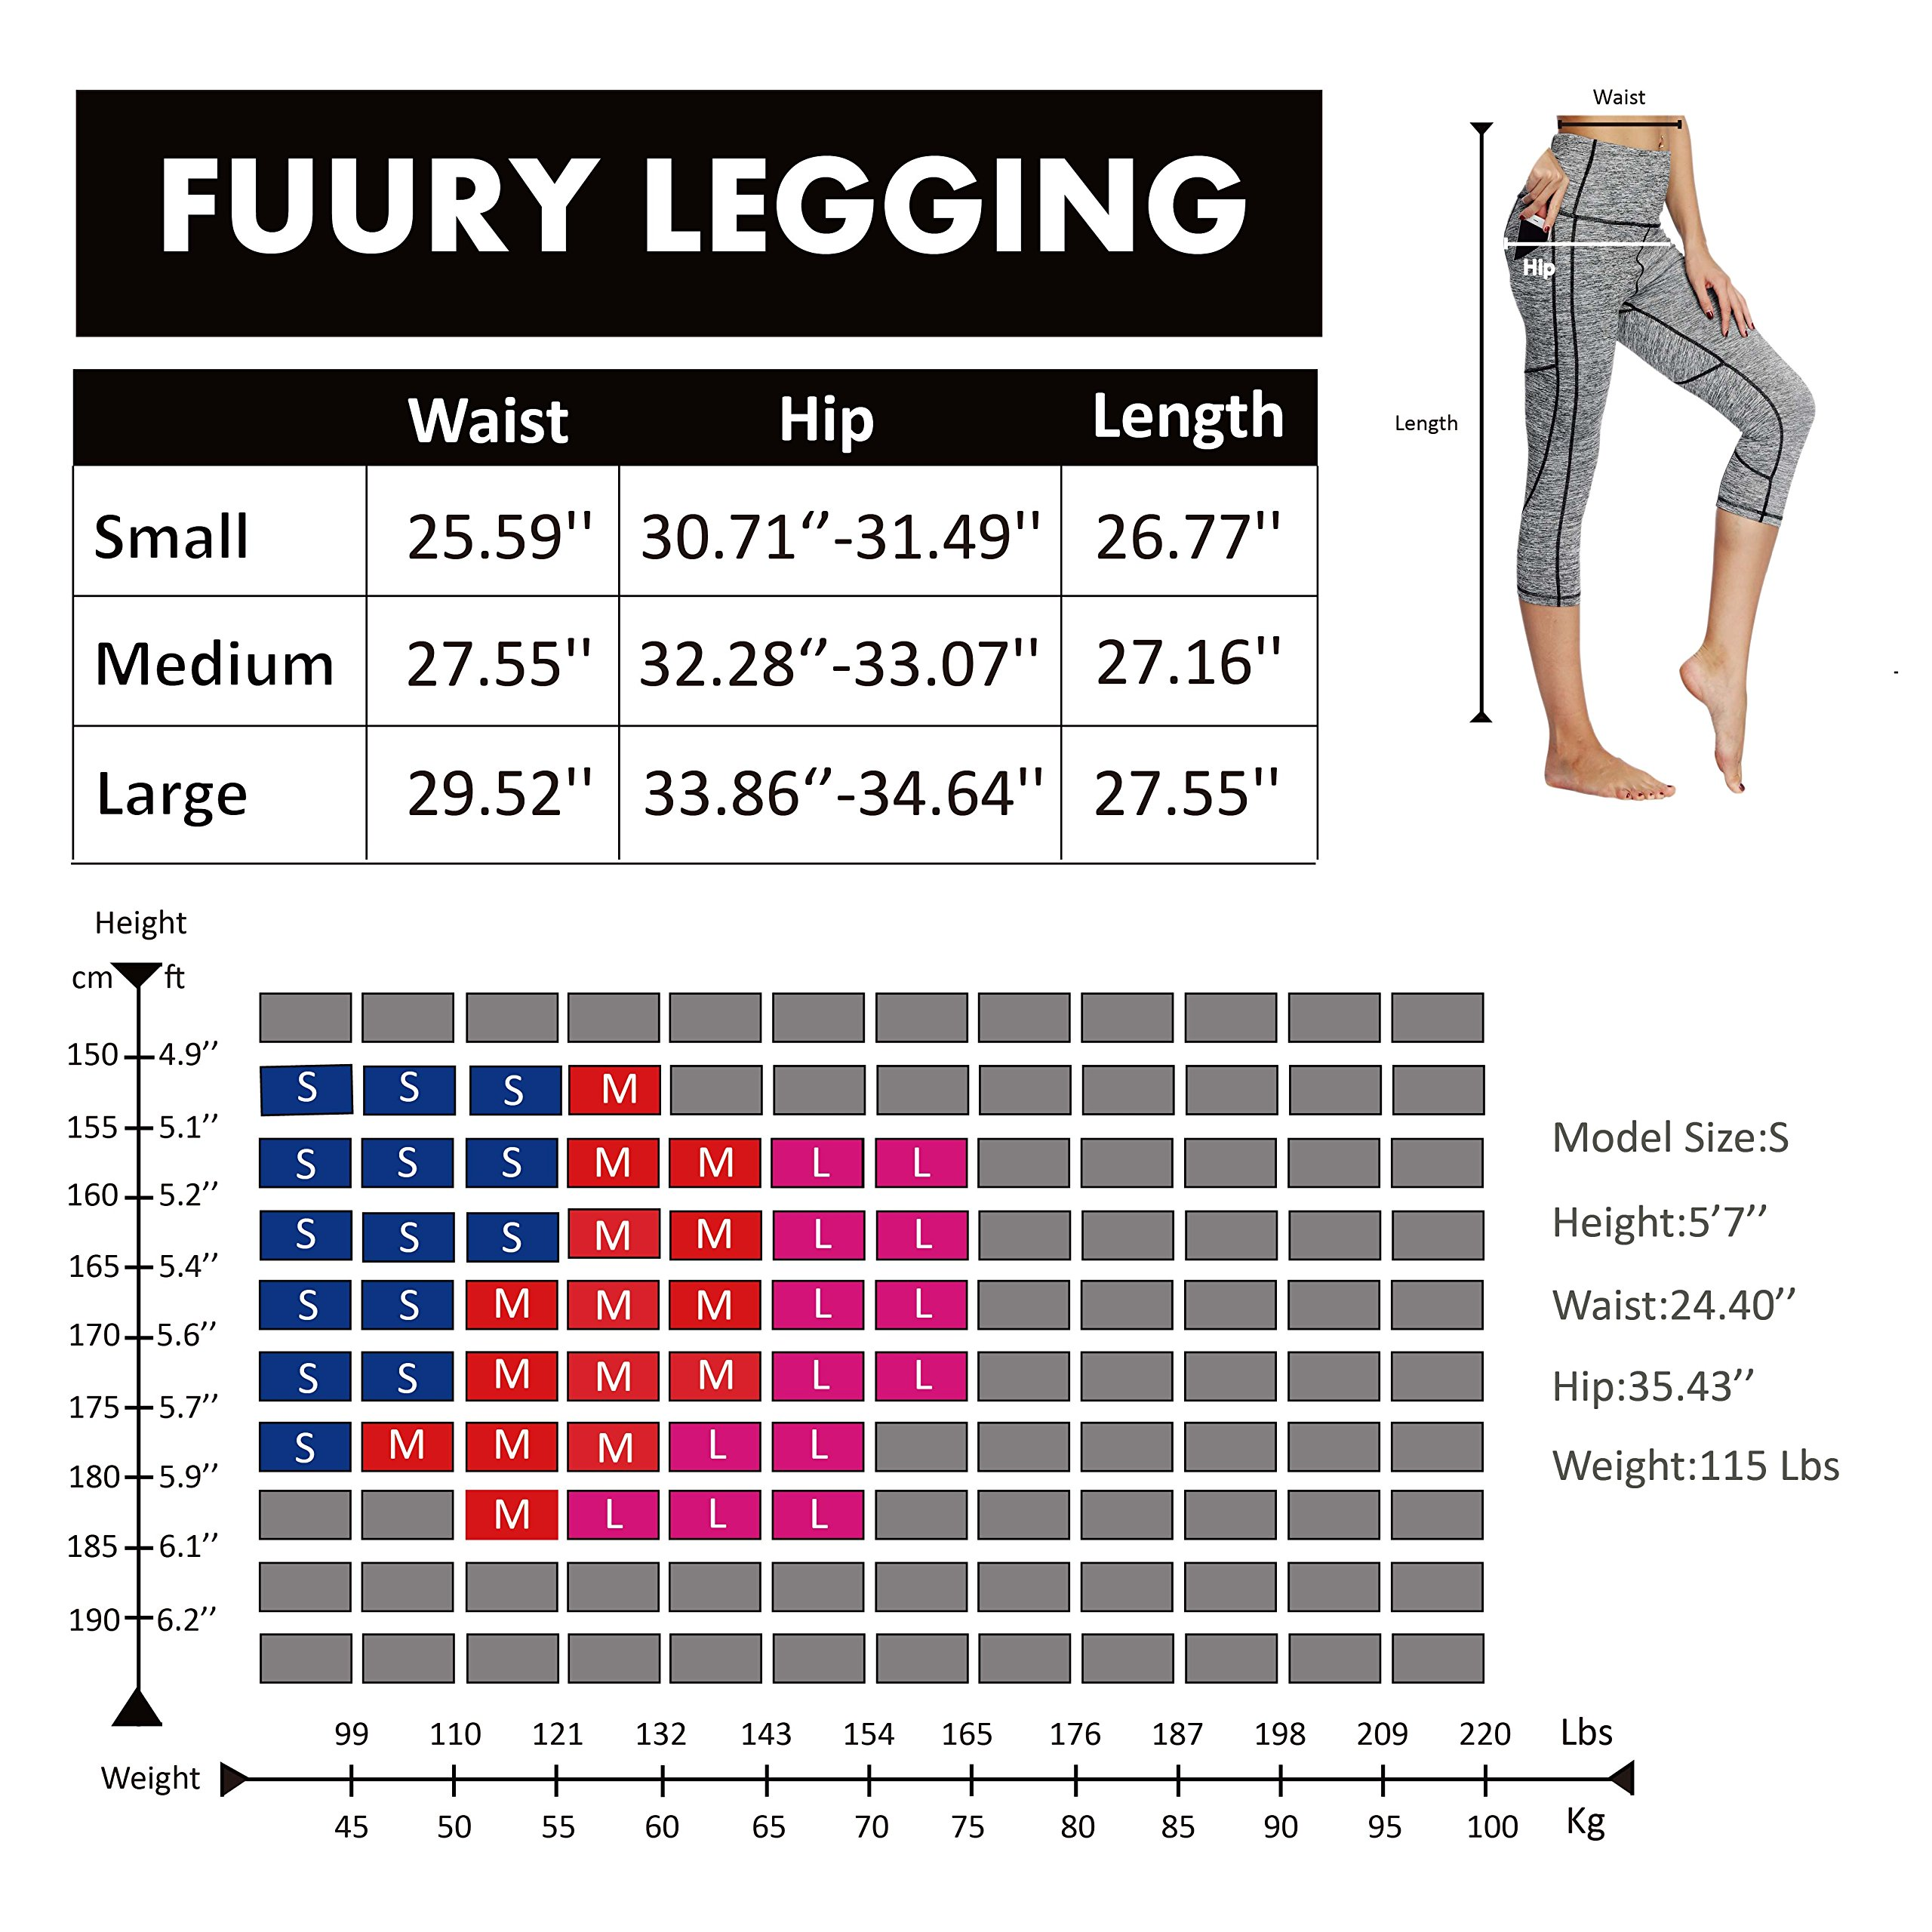 FUURY Womens High Waist Yoga Pants Capri Tummy Control Workout Leggings 4 Way Stretch Yoga Leggings with 2 Out Pockets (Light Gray, L)